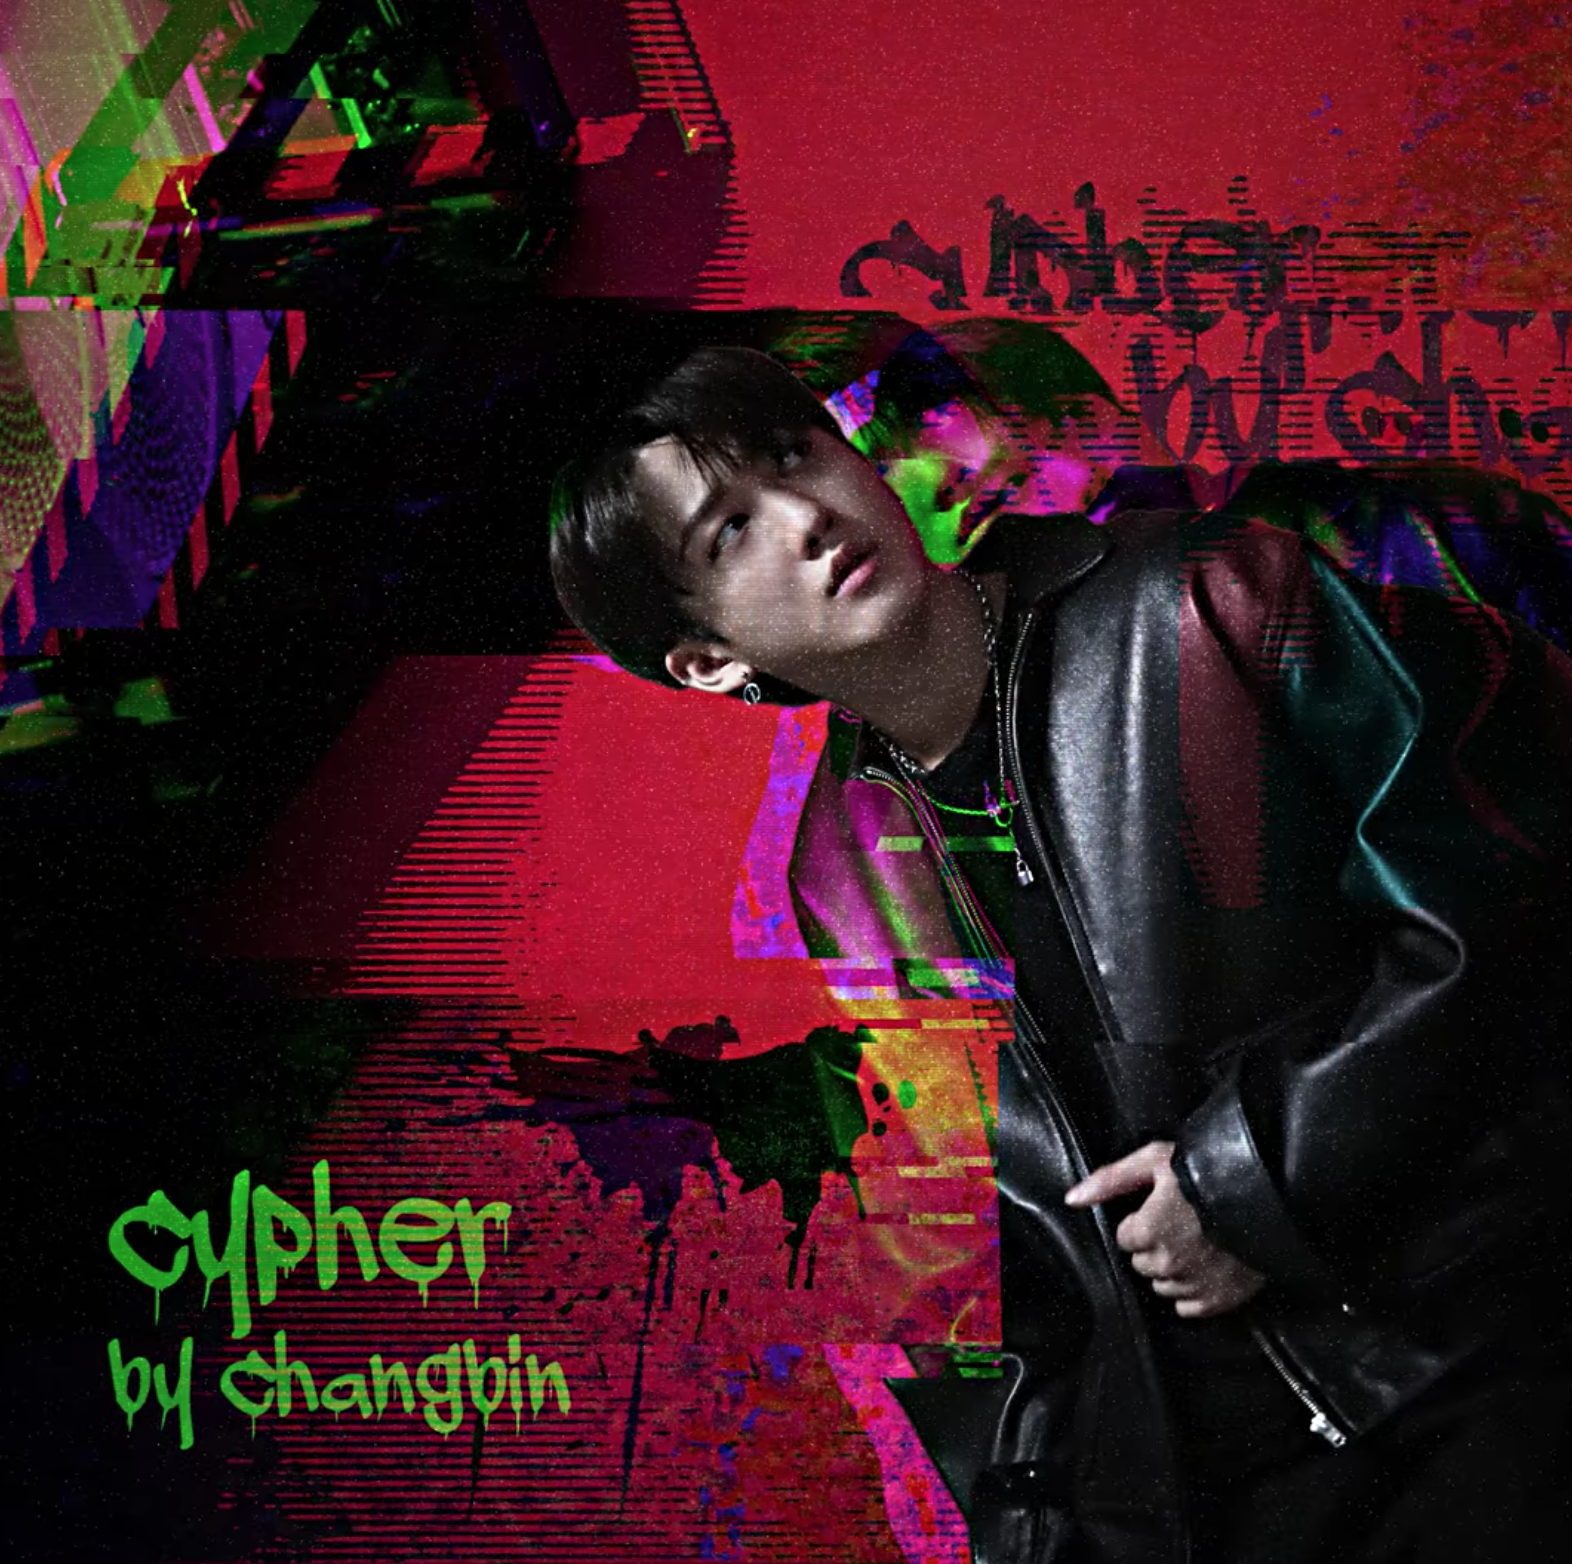 Stray Kids' Changbin Surprises Stays with New SKZ-Record 'Cypher'